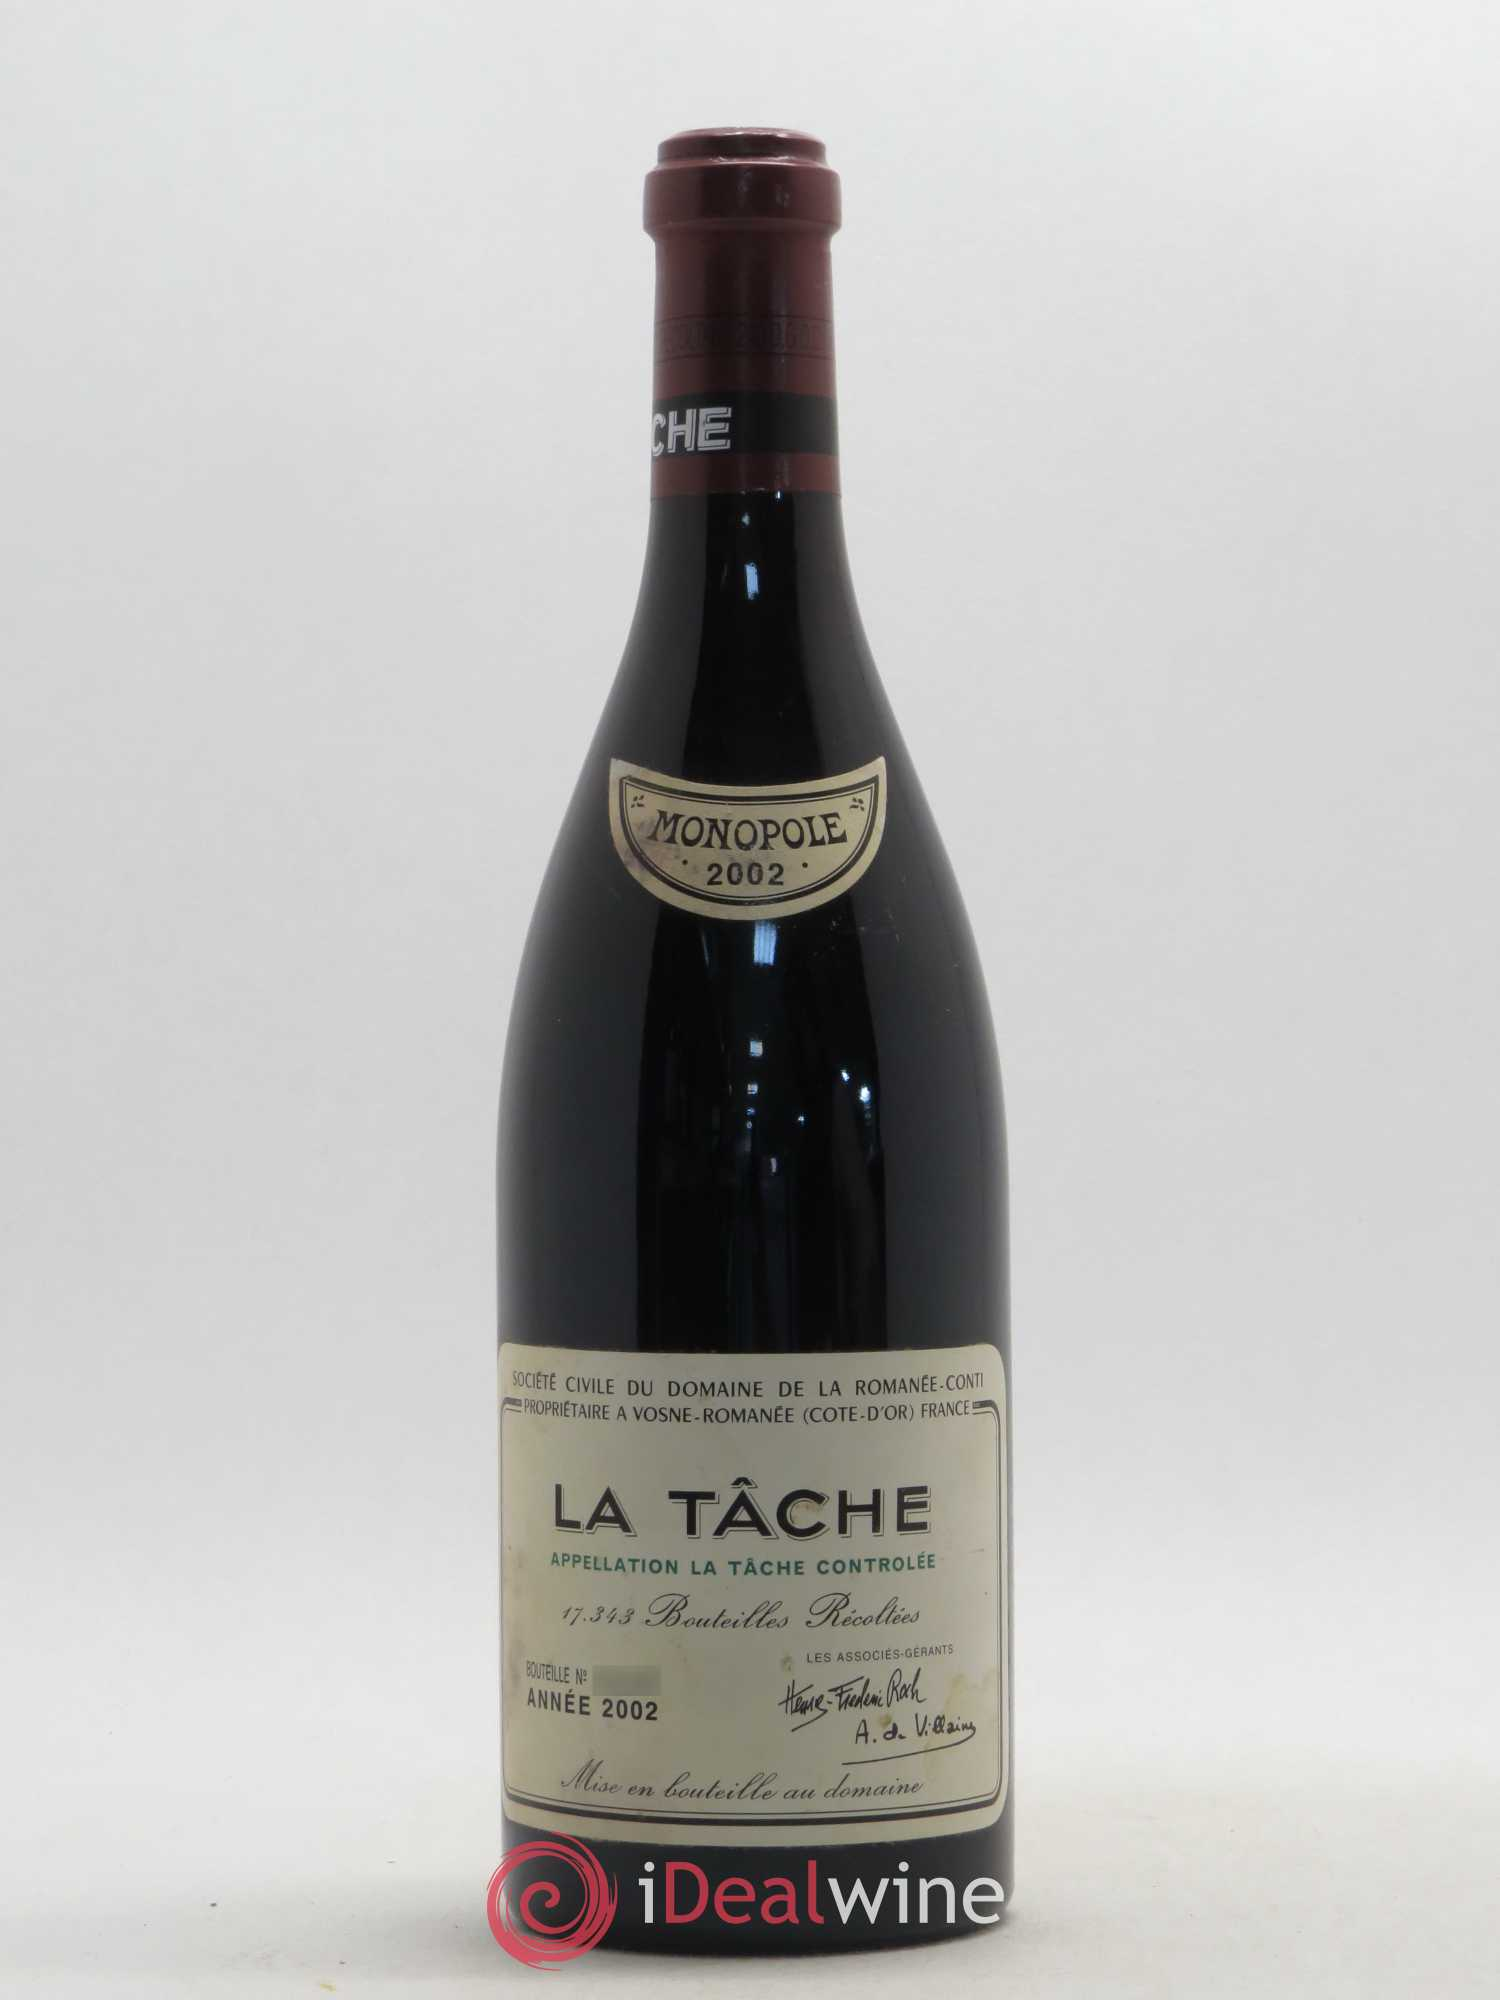 La Tâche Grand Cru Domaine de la Romanée-Conti  2002 - Lot of 1 Bottle